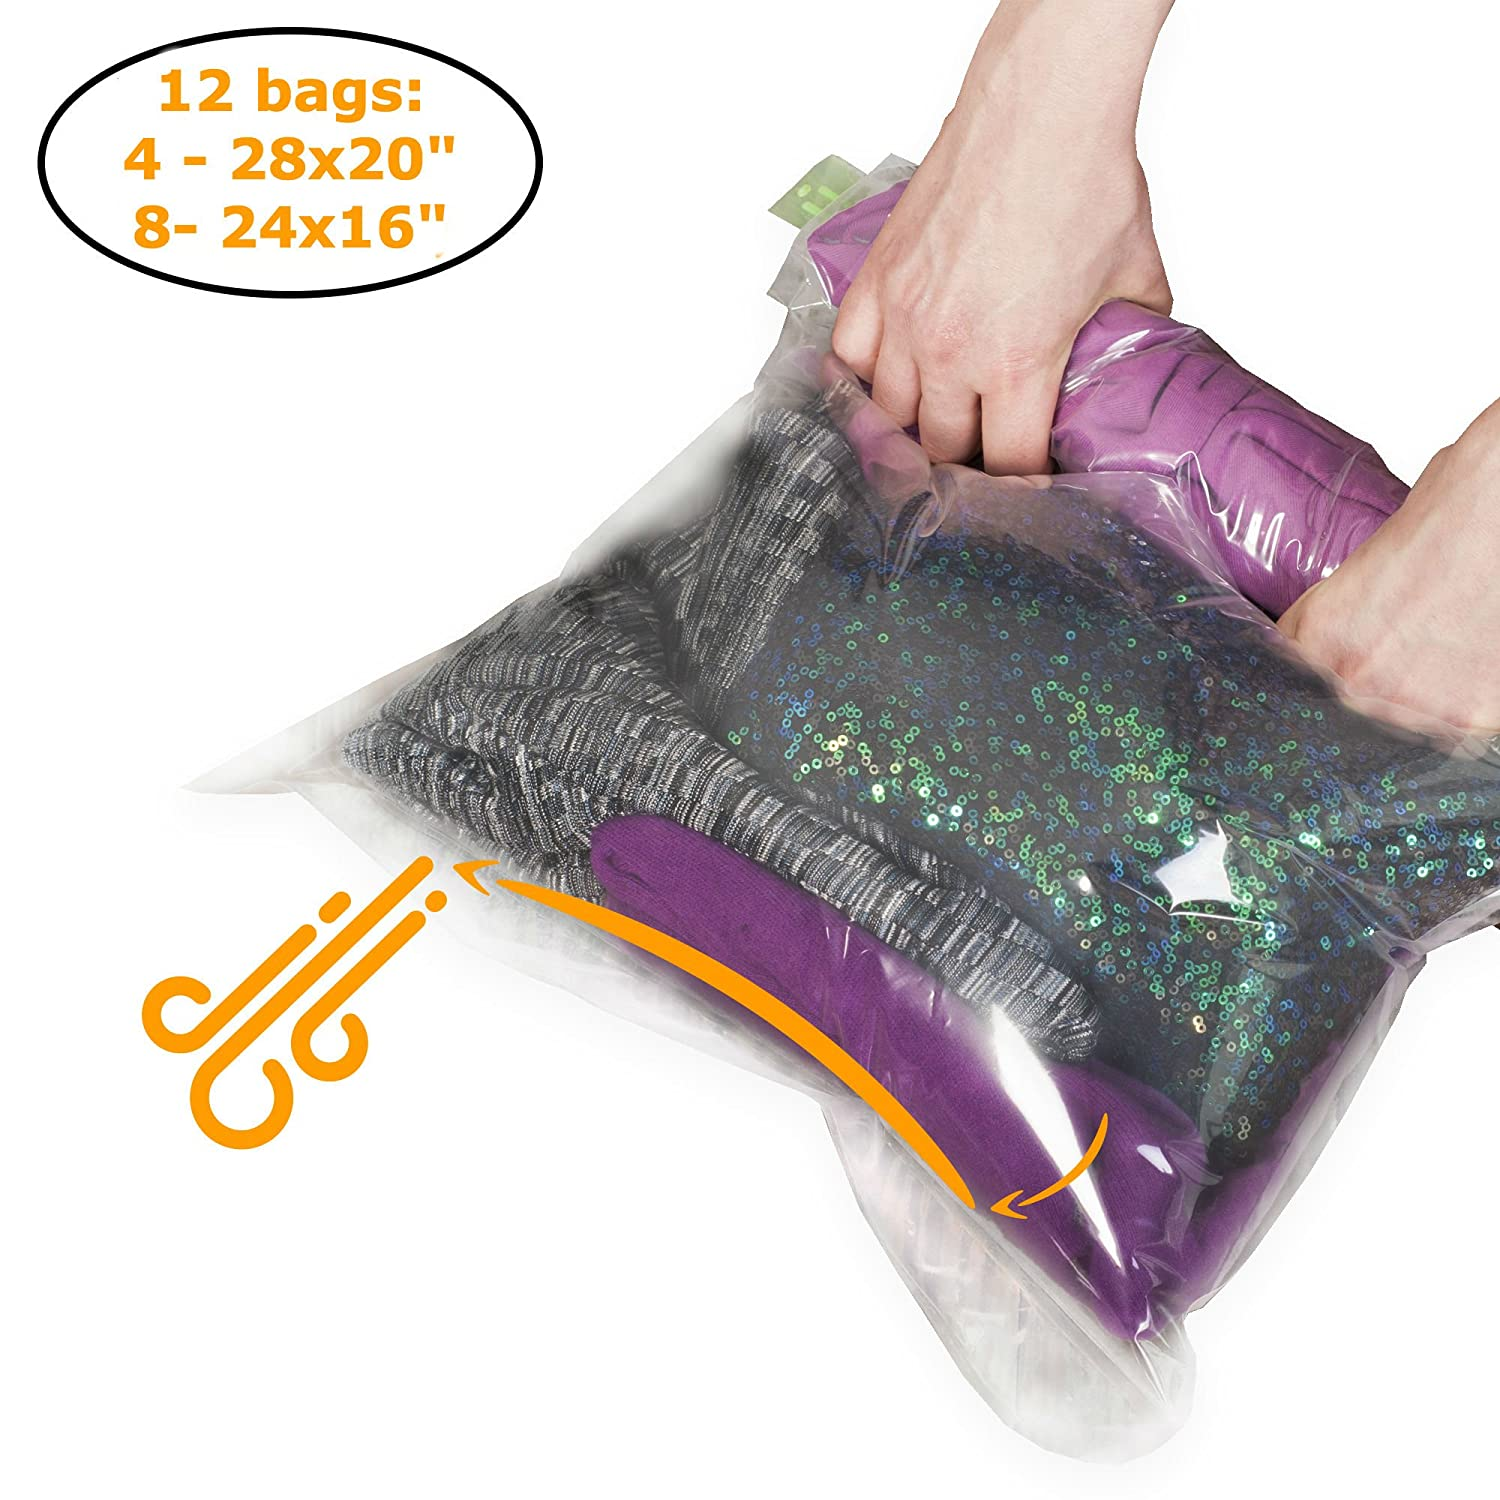 The Chestnut 12 Travel Storage Bags for Clothes - Compression Bags for Travel - no Vacuum Sacks-Save Space in Your Luggage Accessories